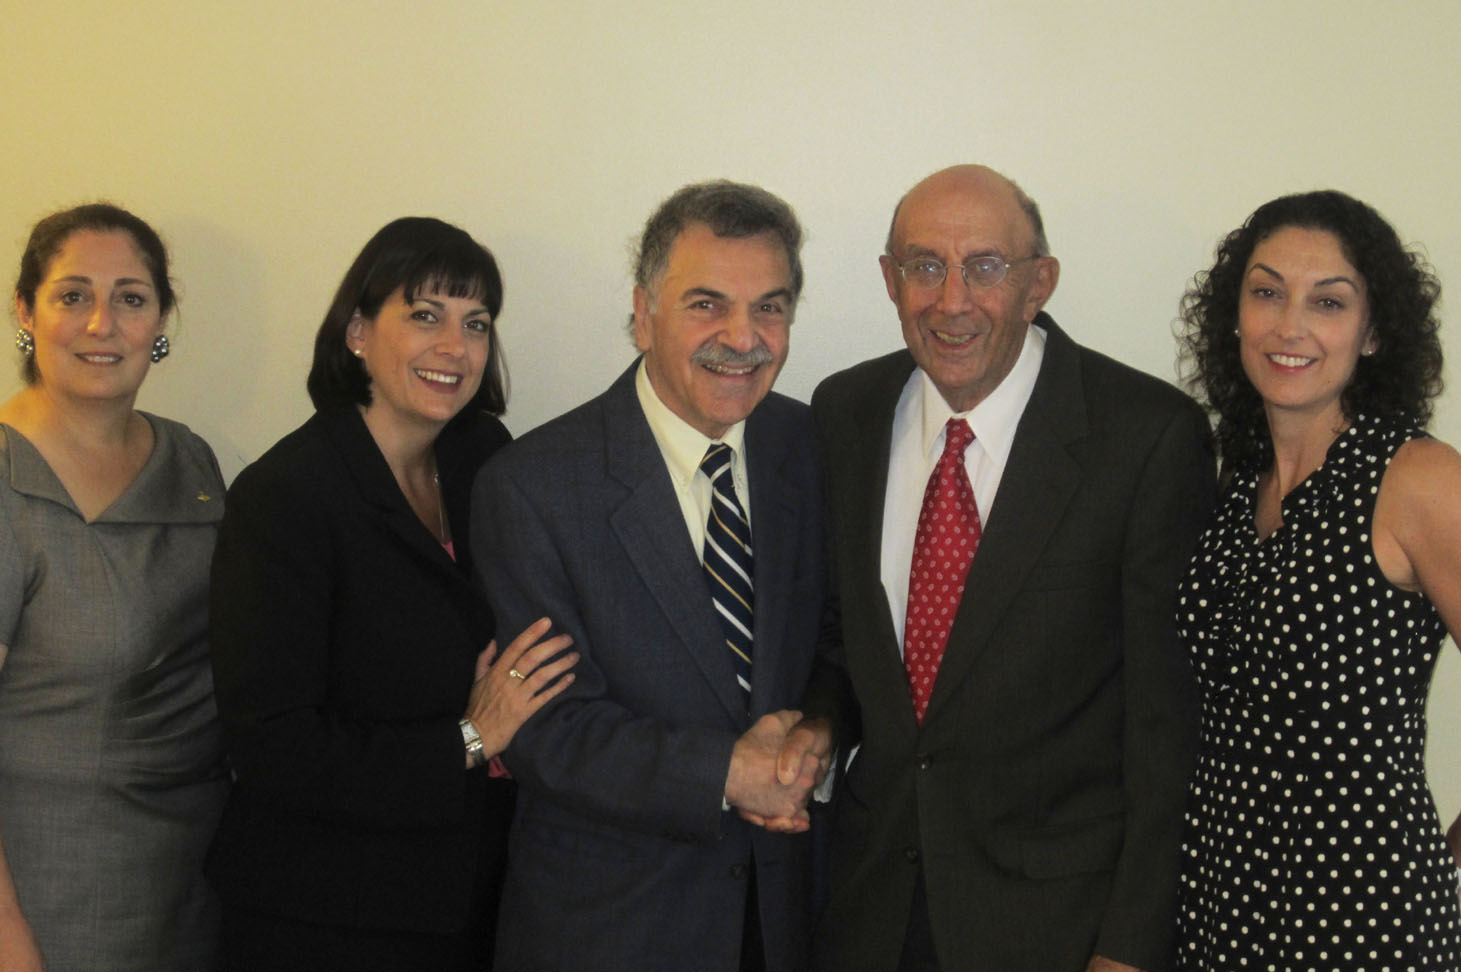 L to R: Phyllis Dohanian, Director of AMAA Development and Marketing; Jeanmarie Papelian, Co-Chair of AMAA Development Committee; Edward Avedisian, AMAA Board member and Avedisian School Benefactor; Bob Mirak and Jill Mirak Kew of the Mirak Foundation.